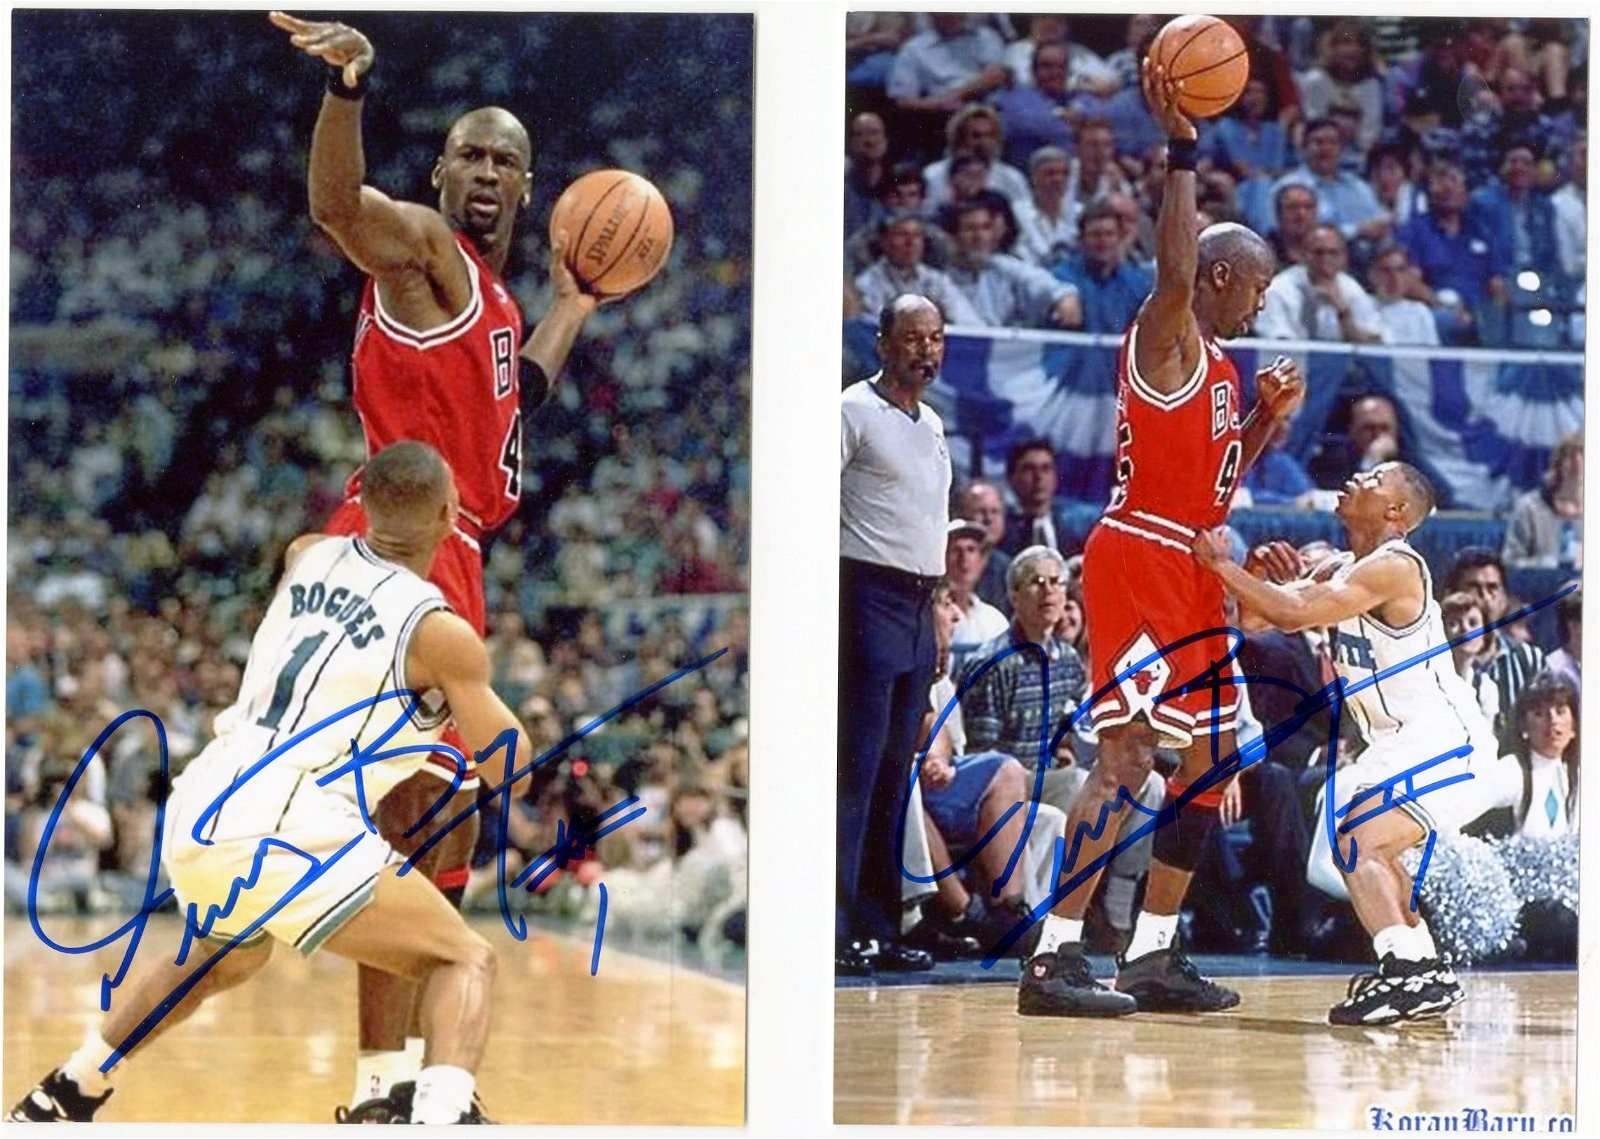 Michael Jordan the best player in the world against